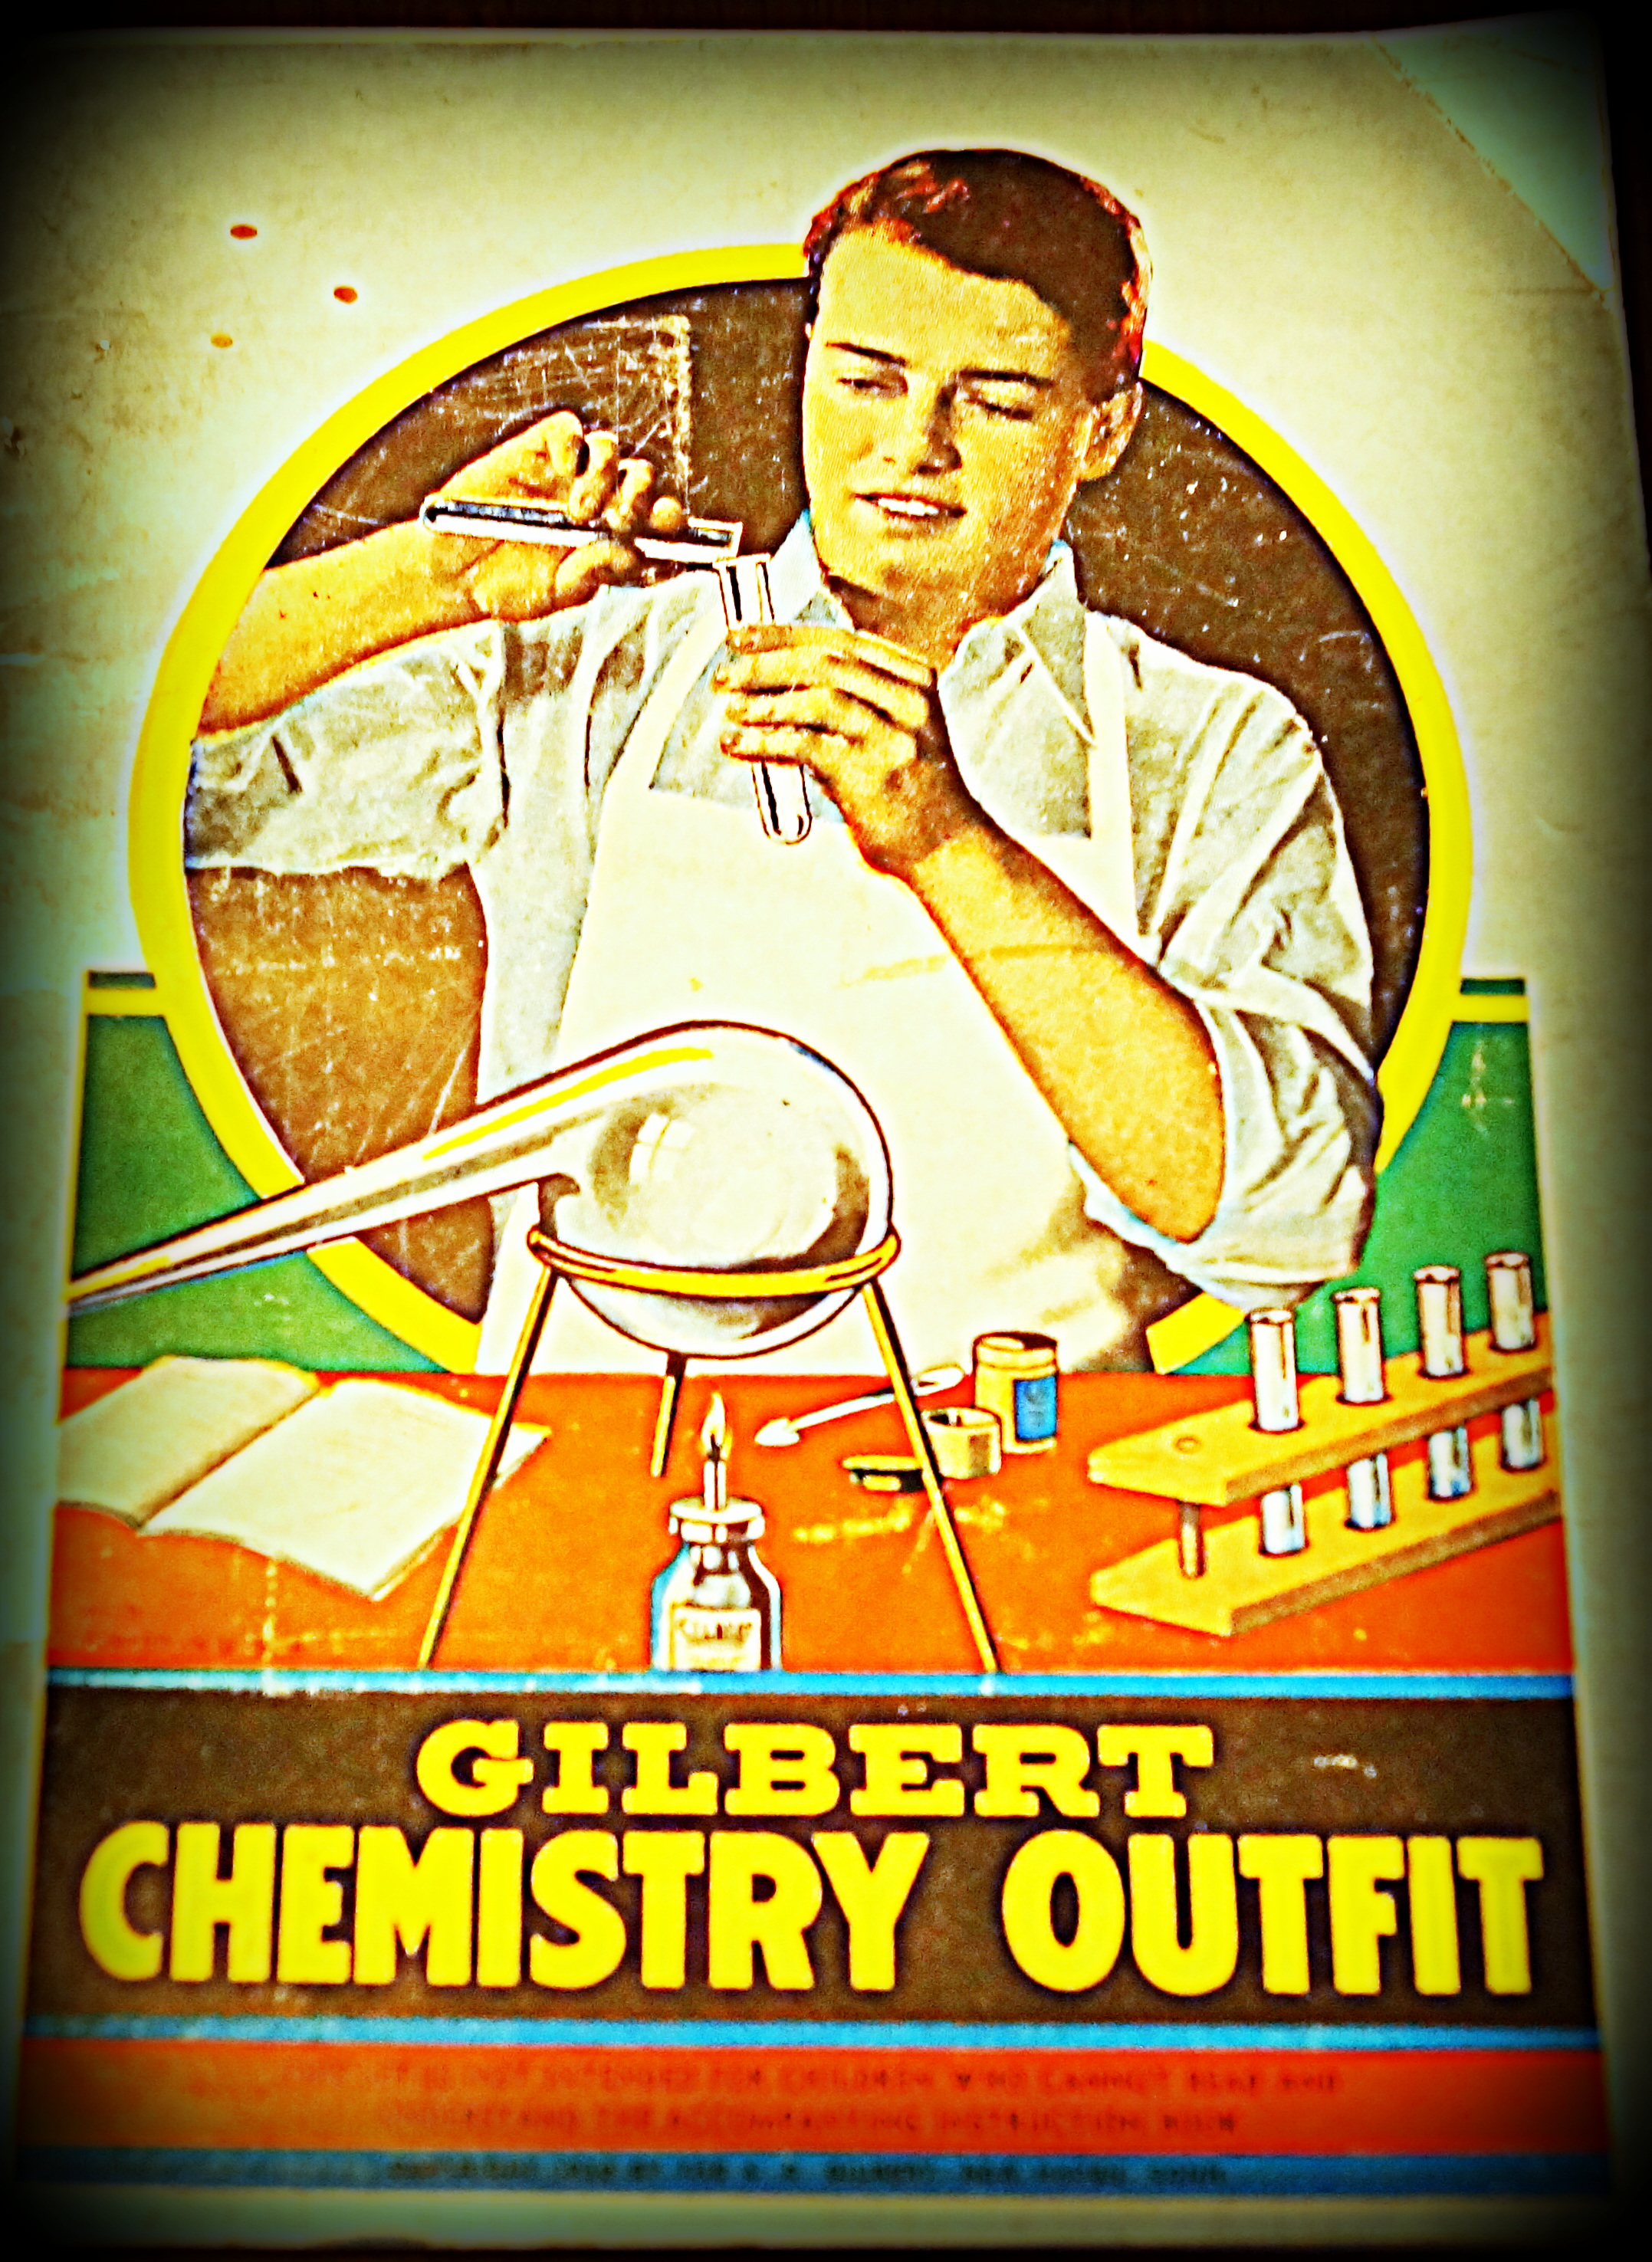 The image depicts the front cover of a Gilbert Chemistry Outfit instruction manual. On the cover, a young man is pictured in a white shirt and a white smock. He is pouring a chemical from one test tube into another. In front of him, on a desk, is displayed his apparatus, including a bunsen burner, a rack containing test tubes, and a spatula.